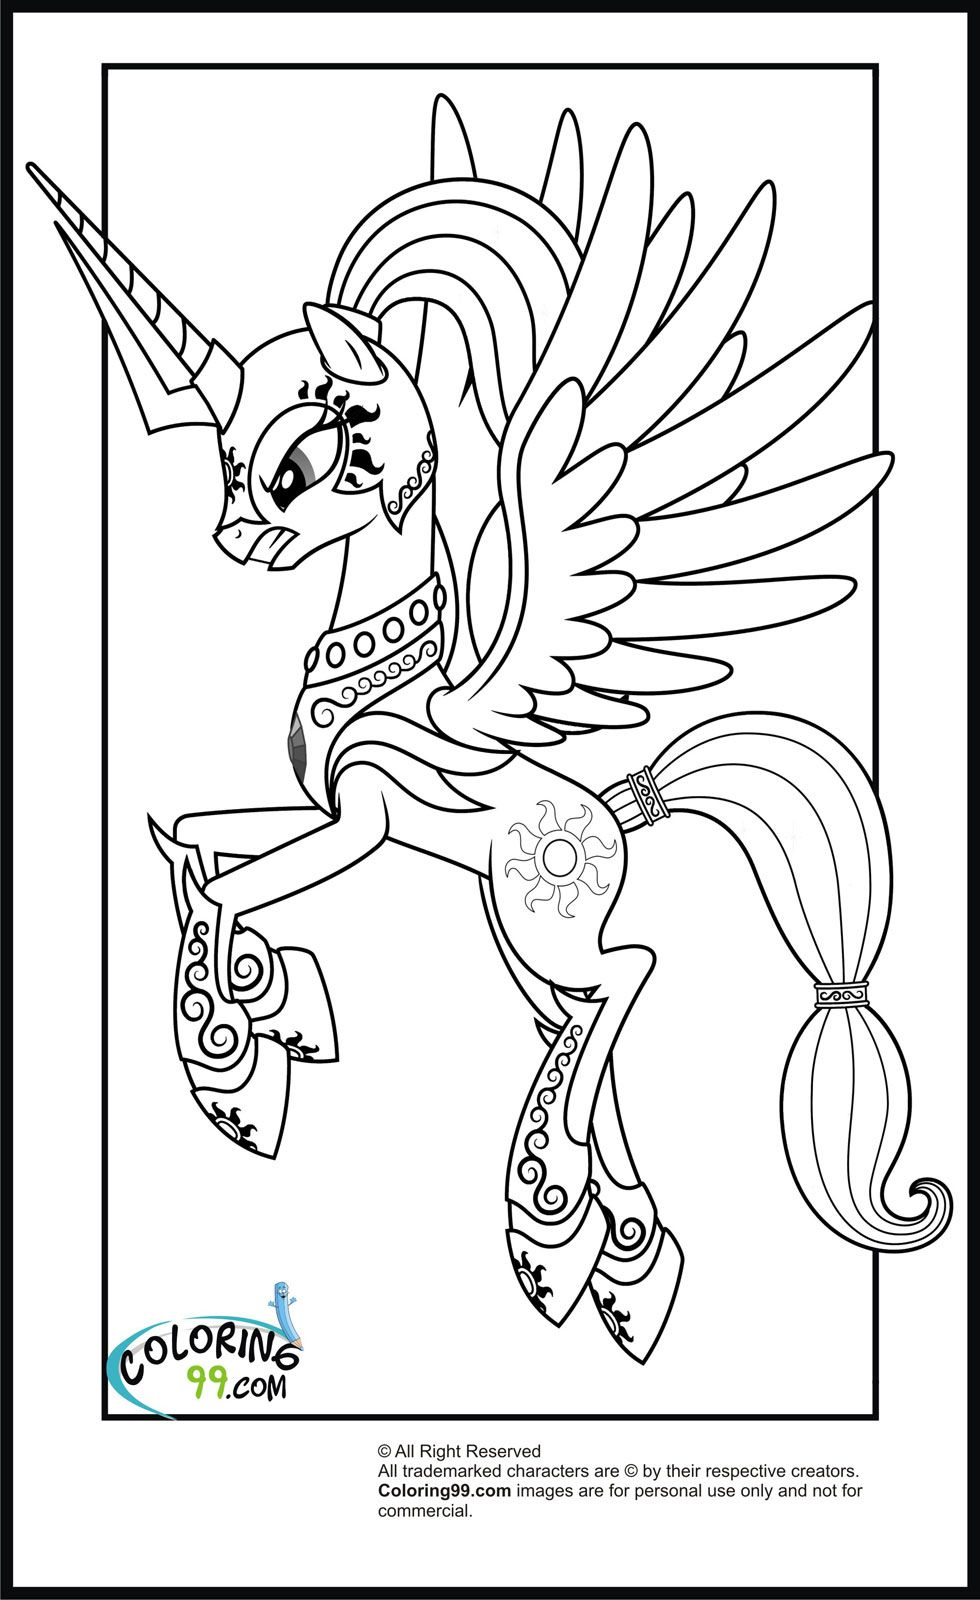 Young my little pony coloring pages - My Little Pony Princess Celestia Coloring Pages